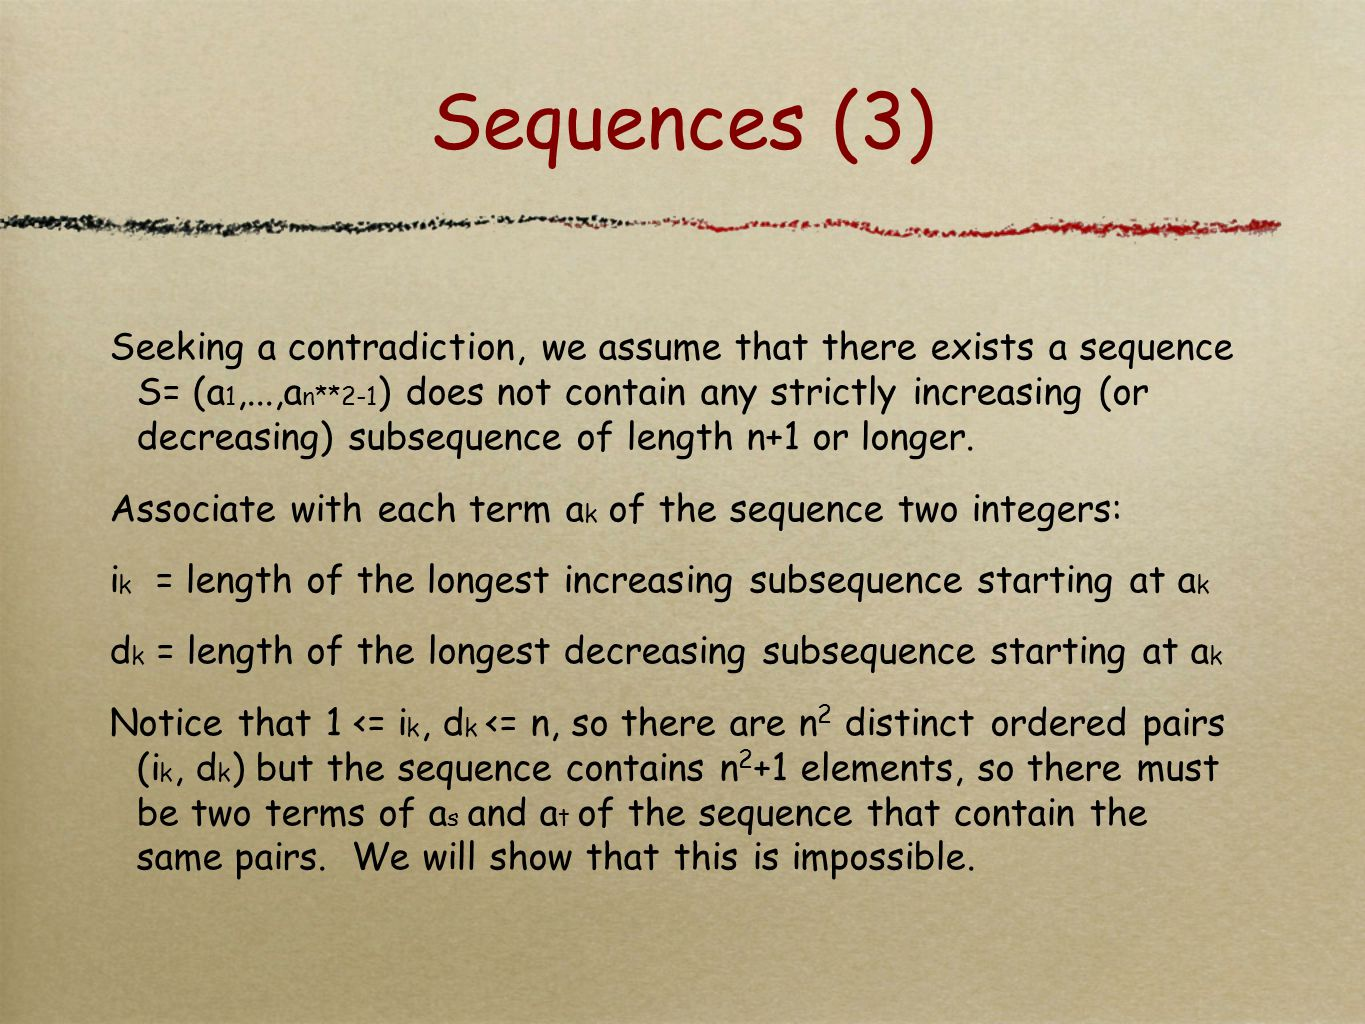 Sequences (3) Seeking a contradiction, we assume that there exists a sequence S= (a 1,...,a n**2-1 ) does not contain any strictly increasing (or decr